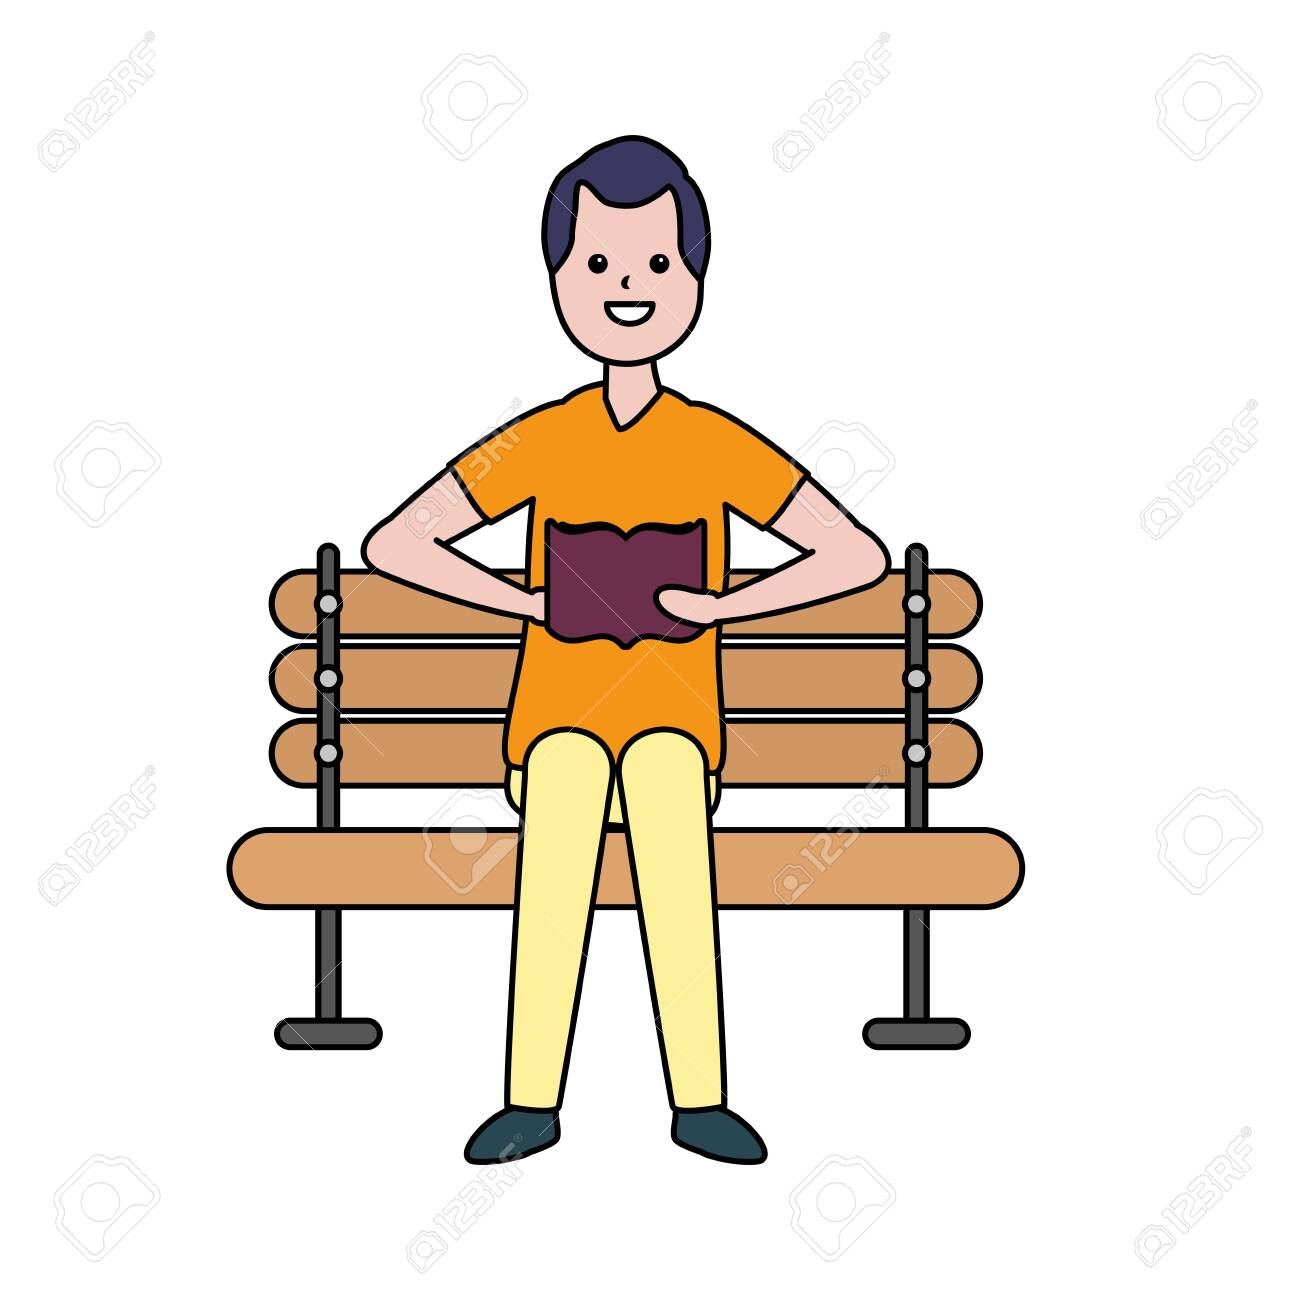 man reading book in the bench vector illustration - 124334562